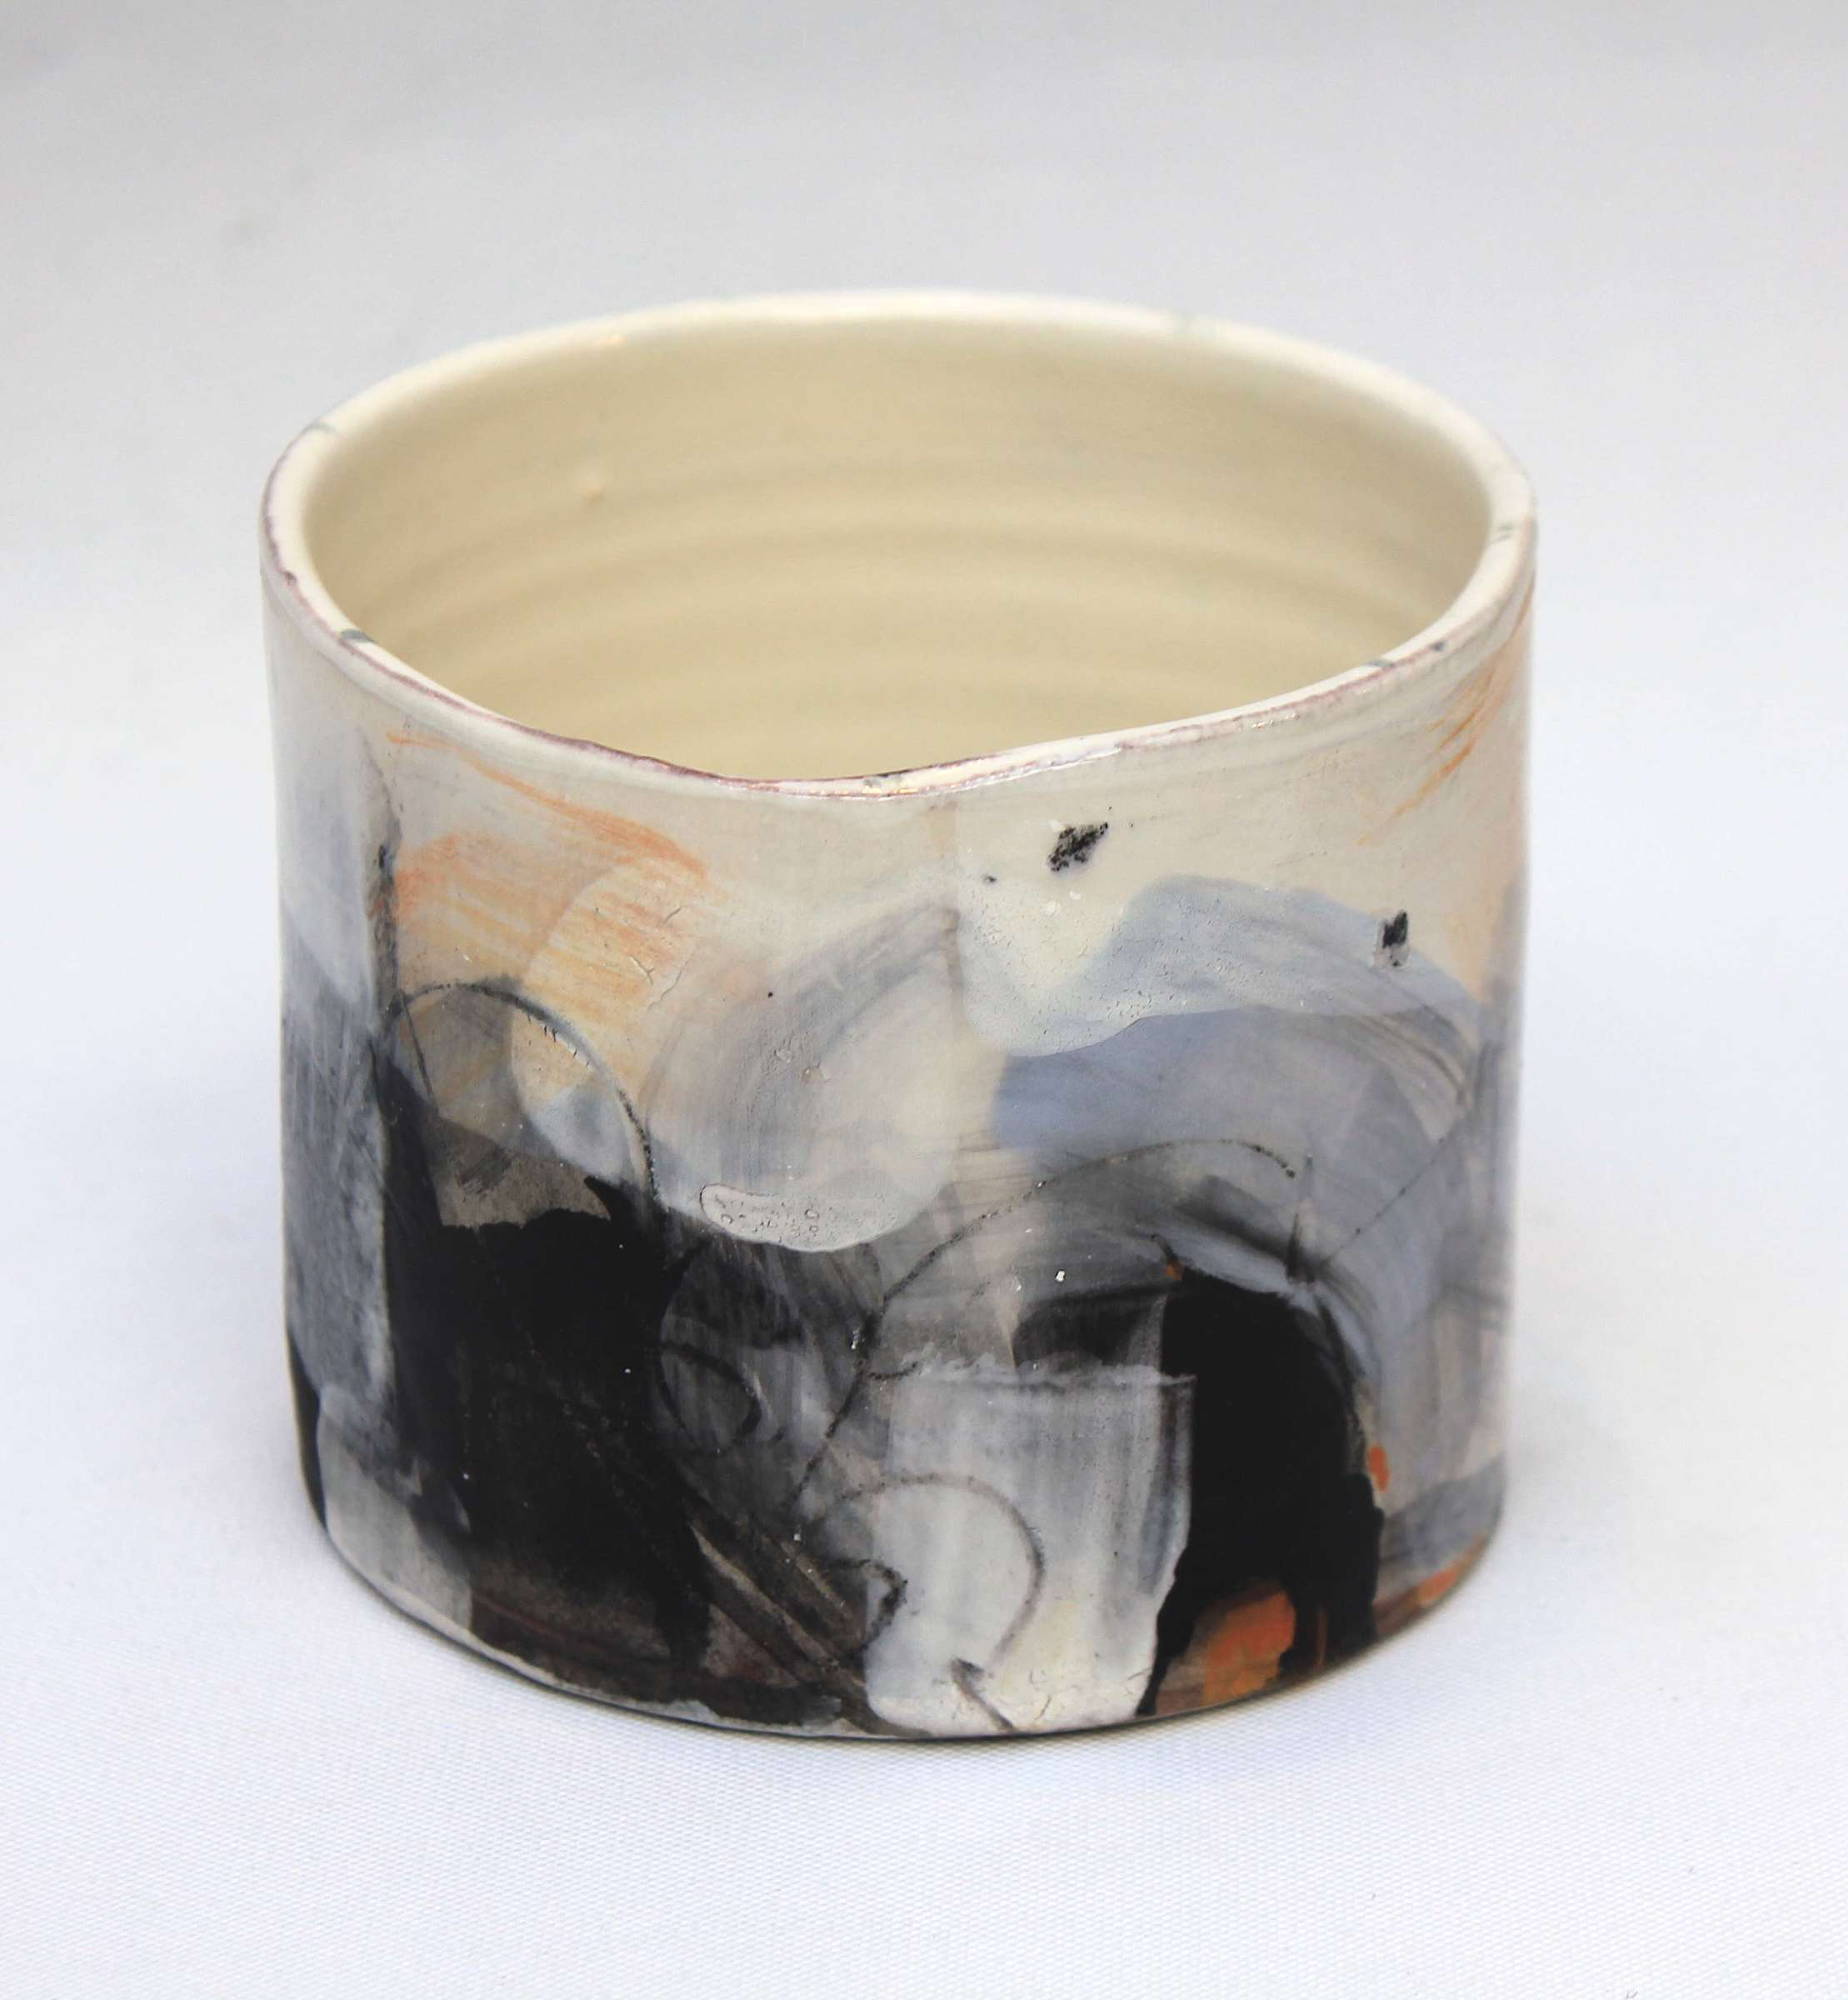 "<span class=""link fancybox-details-link""><a href=""/artists/34-barry-stedman/works/4154-barry-stedman-thrown-vessel-dark-shore-series-2017/"">View Detail Page</a></span><div class=""artist""><strong>Barry Stedman</strong></div> b. 1965 <div class=""title""><em>Thrown VEssel 'Dark Shore' Series</em>, 2017</div> <div class=""signed_and_dated"">signed by artist</div> <div class=""medium"">thrown and altered earthenware, decorated with slips</div> <div class=""dimensions"">8 x 9 cm<br /> 3 1/8 x 3 1/2 inches</div><div class=""price"">£145.00</div><div class=""copyright_line"">OwnArt: £ 14.50 x 10 Months, 0% APR</div>"